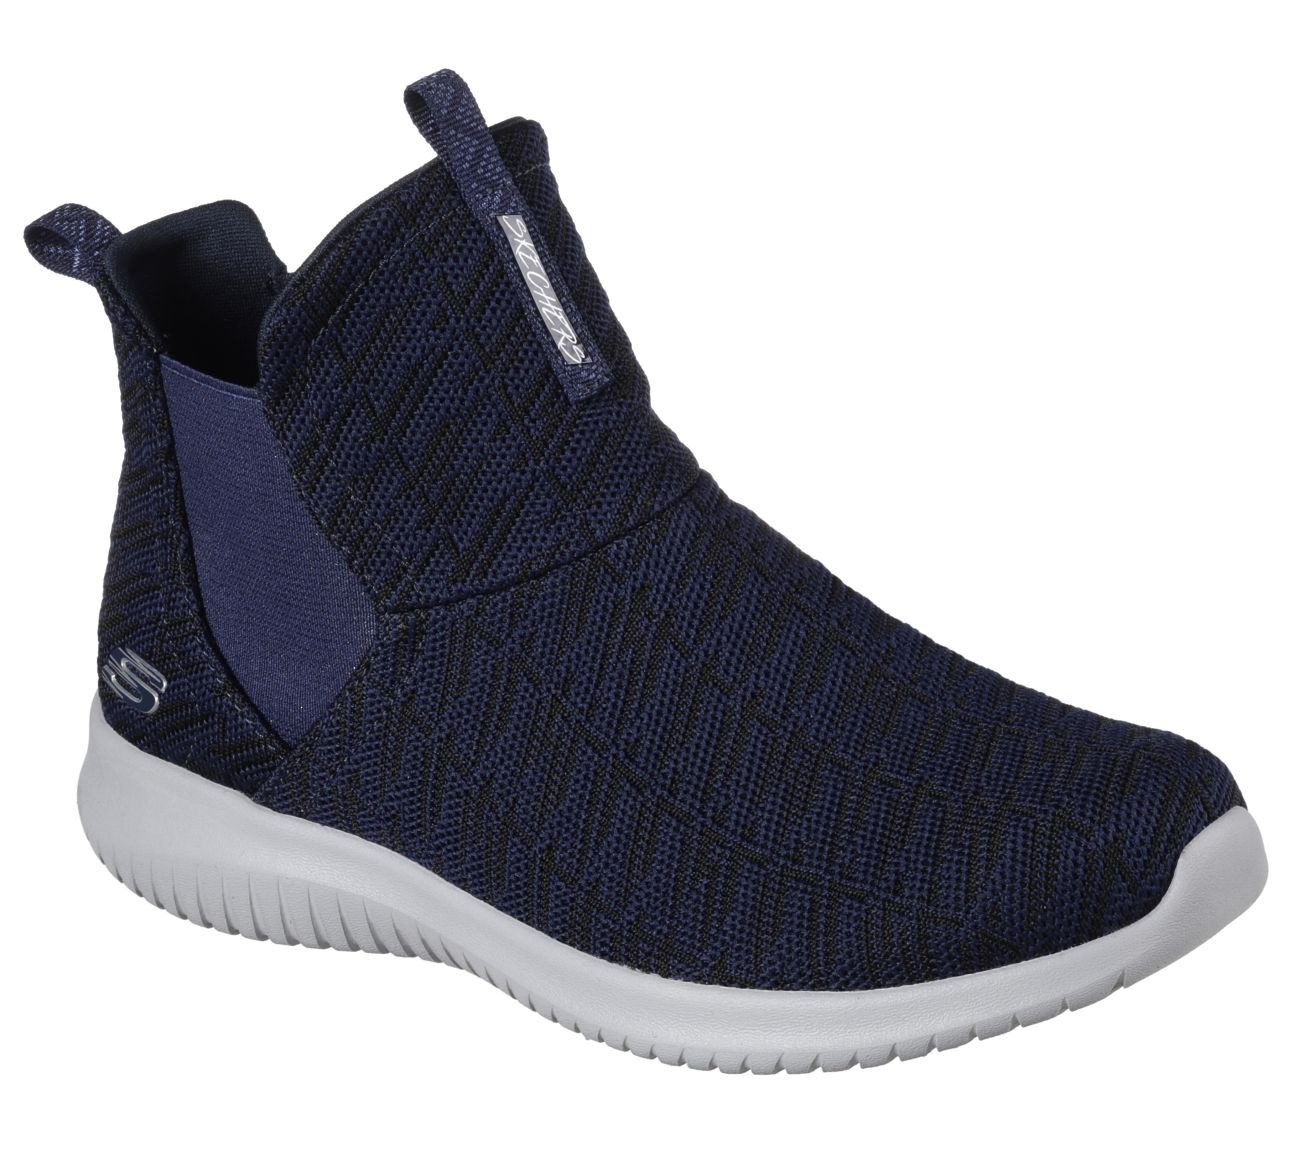 Skechers Ultra Flex High Rise | Sporty Damesko Skechers.dk 4iq7x